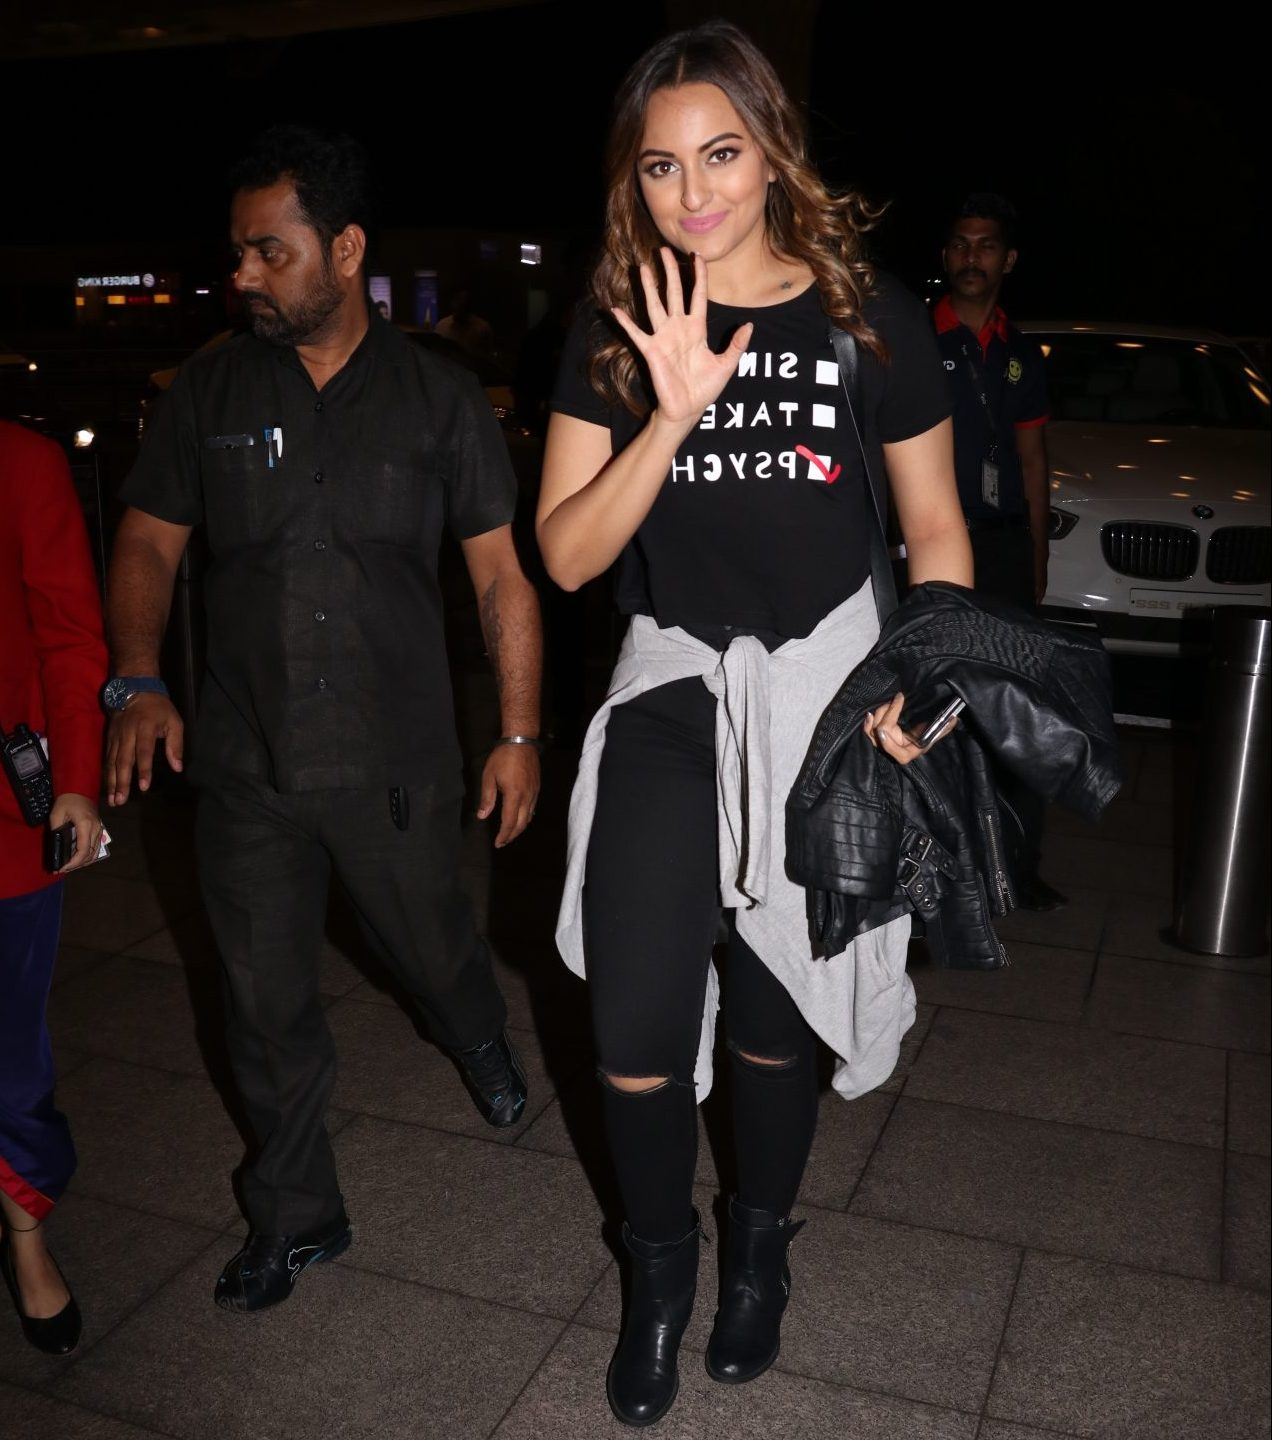 Sonakshi Sinha is an actress who made her debut in the film industry with Salman Khan's movie Dabangg where her role was extremely appreciable. Here we can see her at an Airport with her cute smile and quirky look